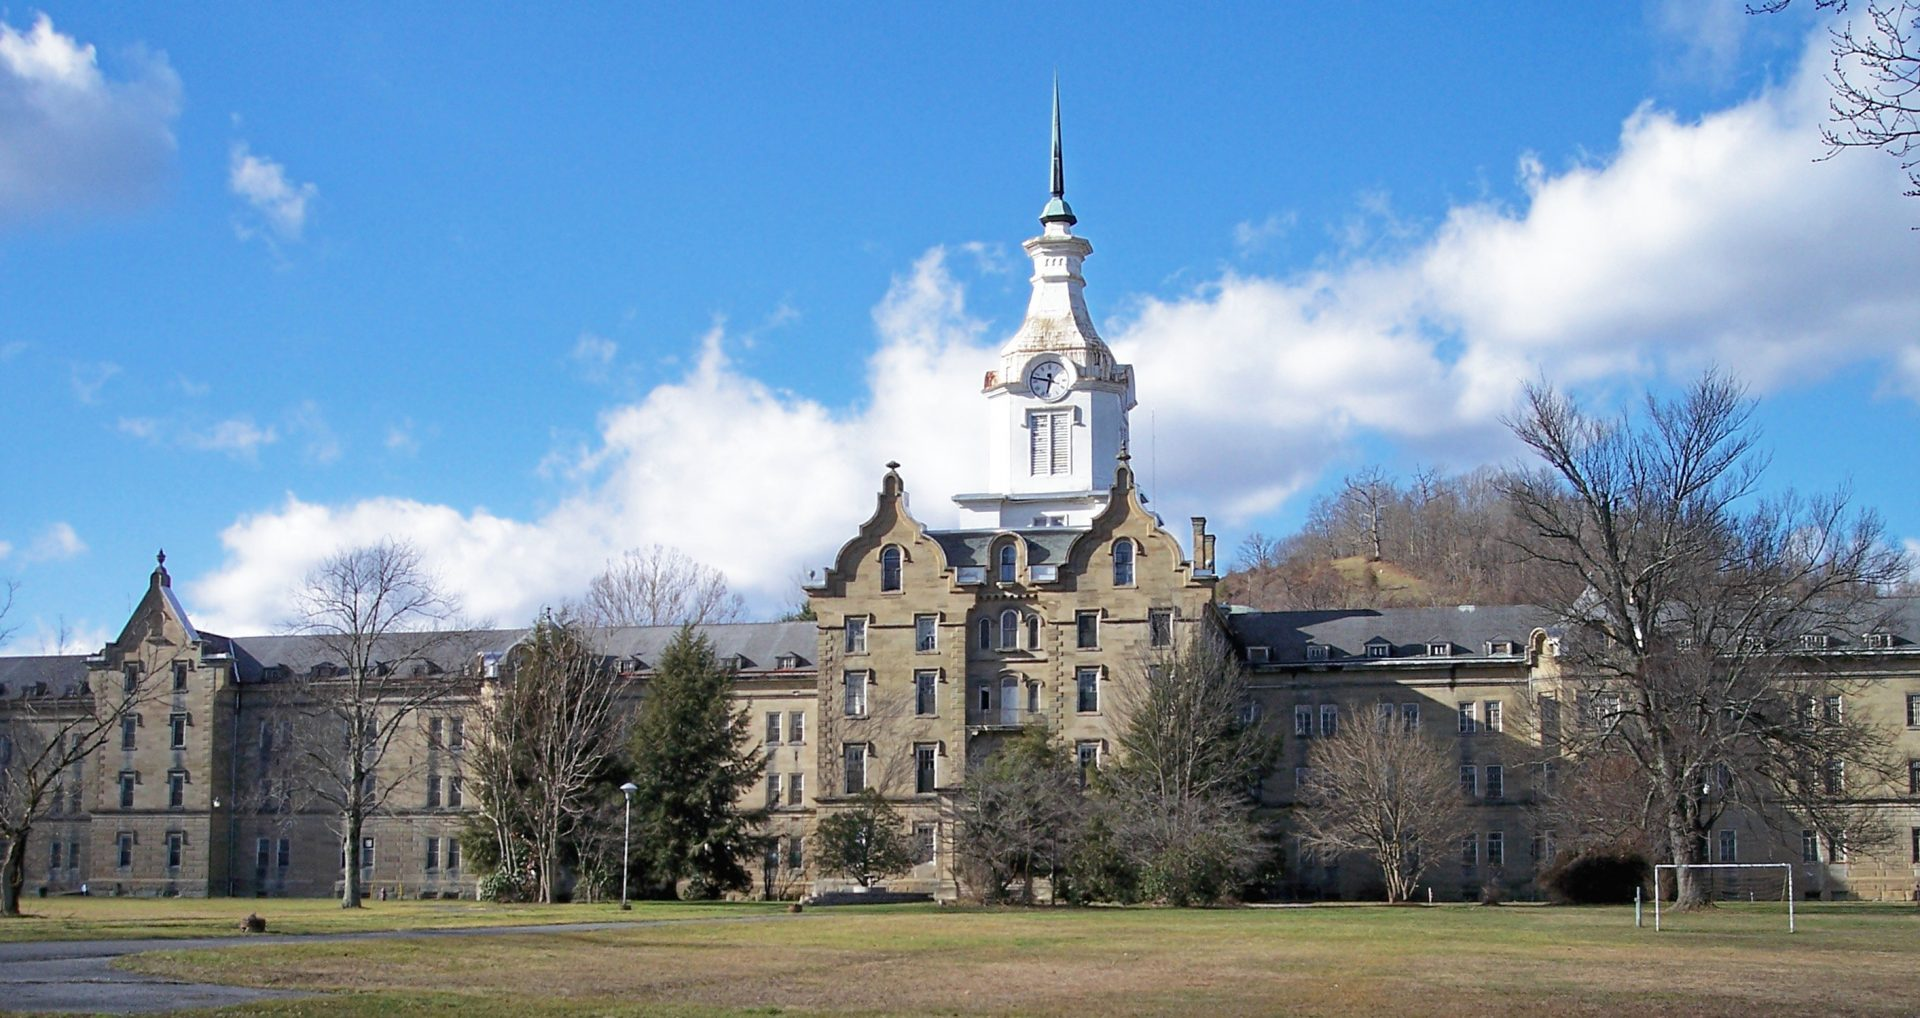 Weston State Hospital: By Tim Kiser (w:User:Malepheasant) - Self-photographed, CC BY-SA 2.5, https://commons.wikimedia.org/w/index.php?curid=1702931